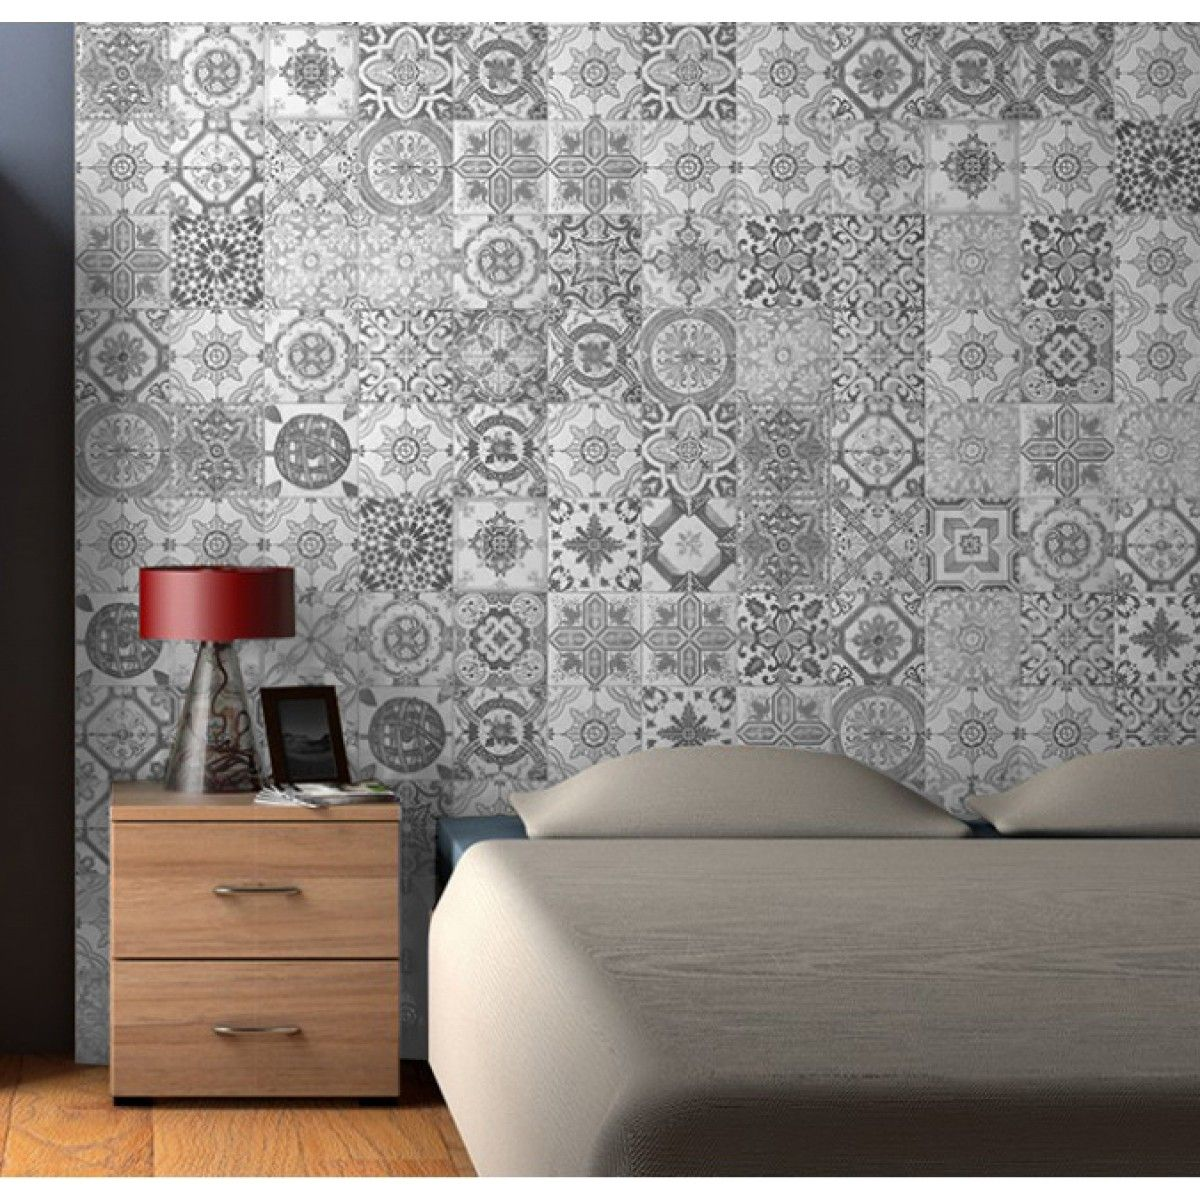 crown tiles online shop stocks large ranges of tiles. Black Bedroom Furniture Sets. Home Design Ideas